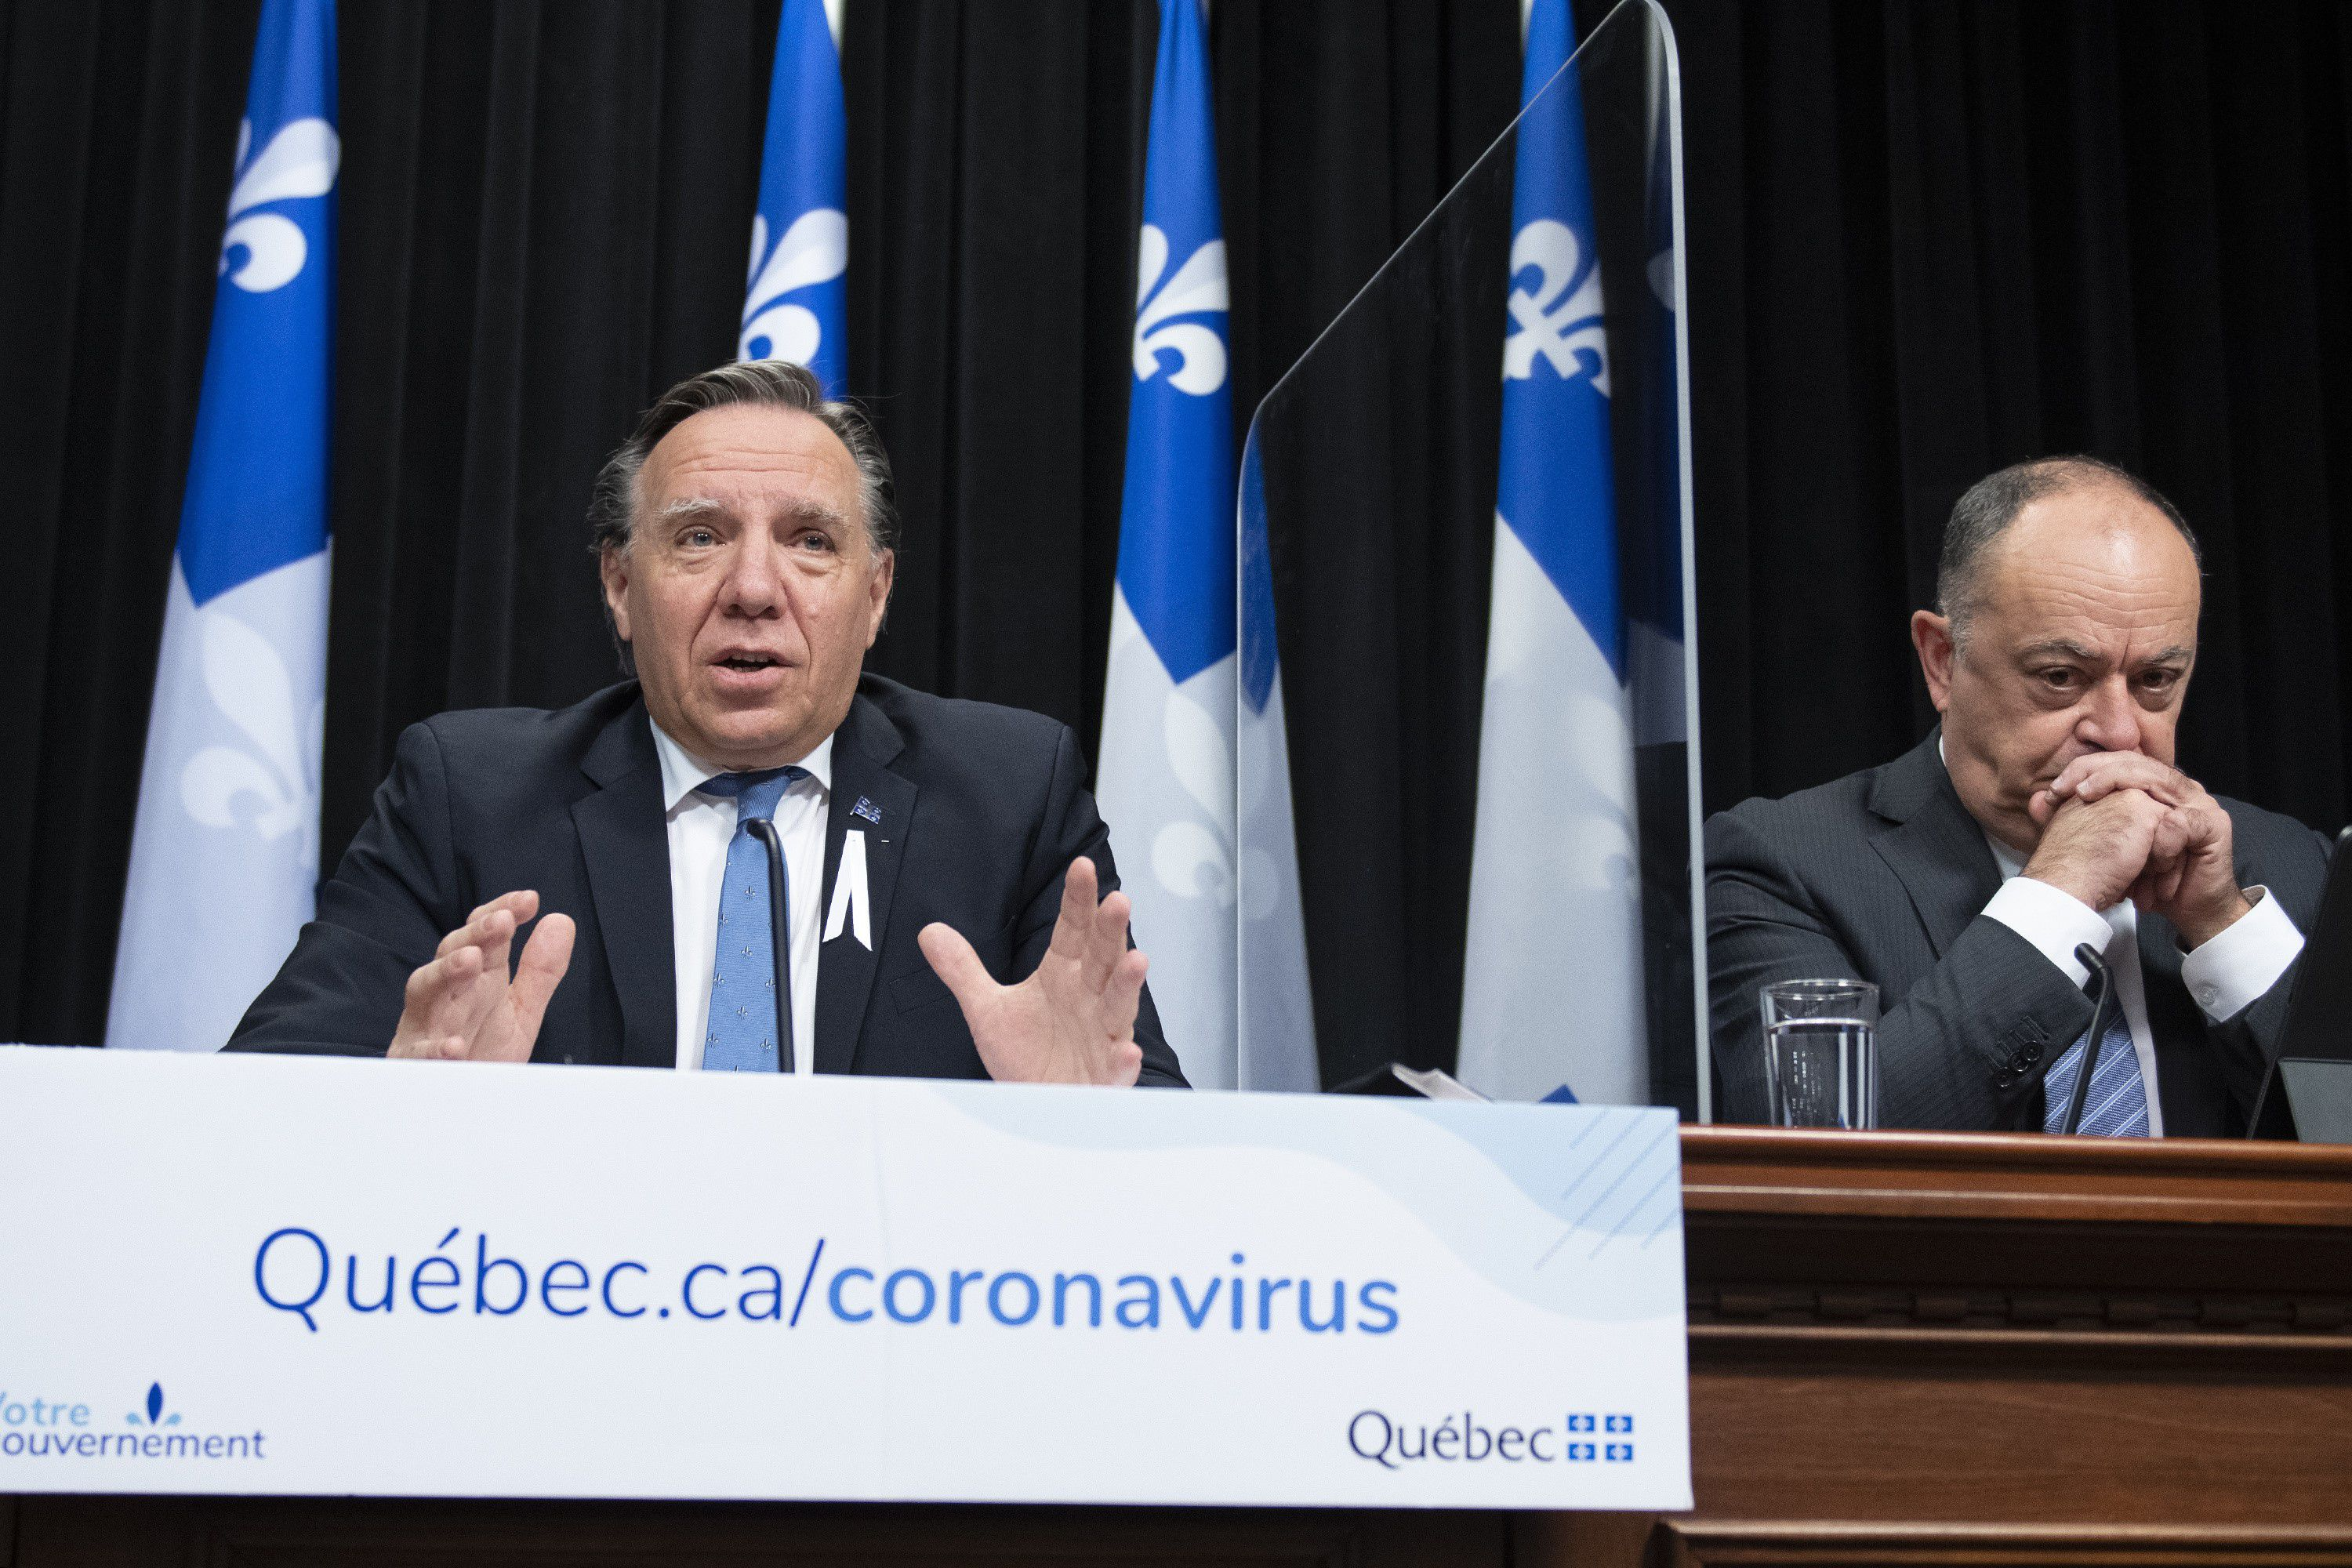 Quebec Government Cancels Plan To Allow Christmas Gatherings As Covid 19 Cases Rise The Globe And Mail